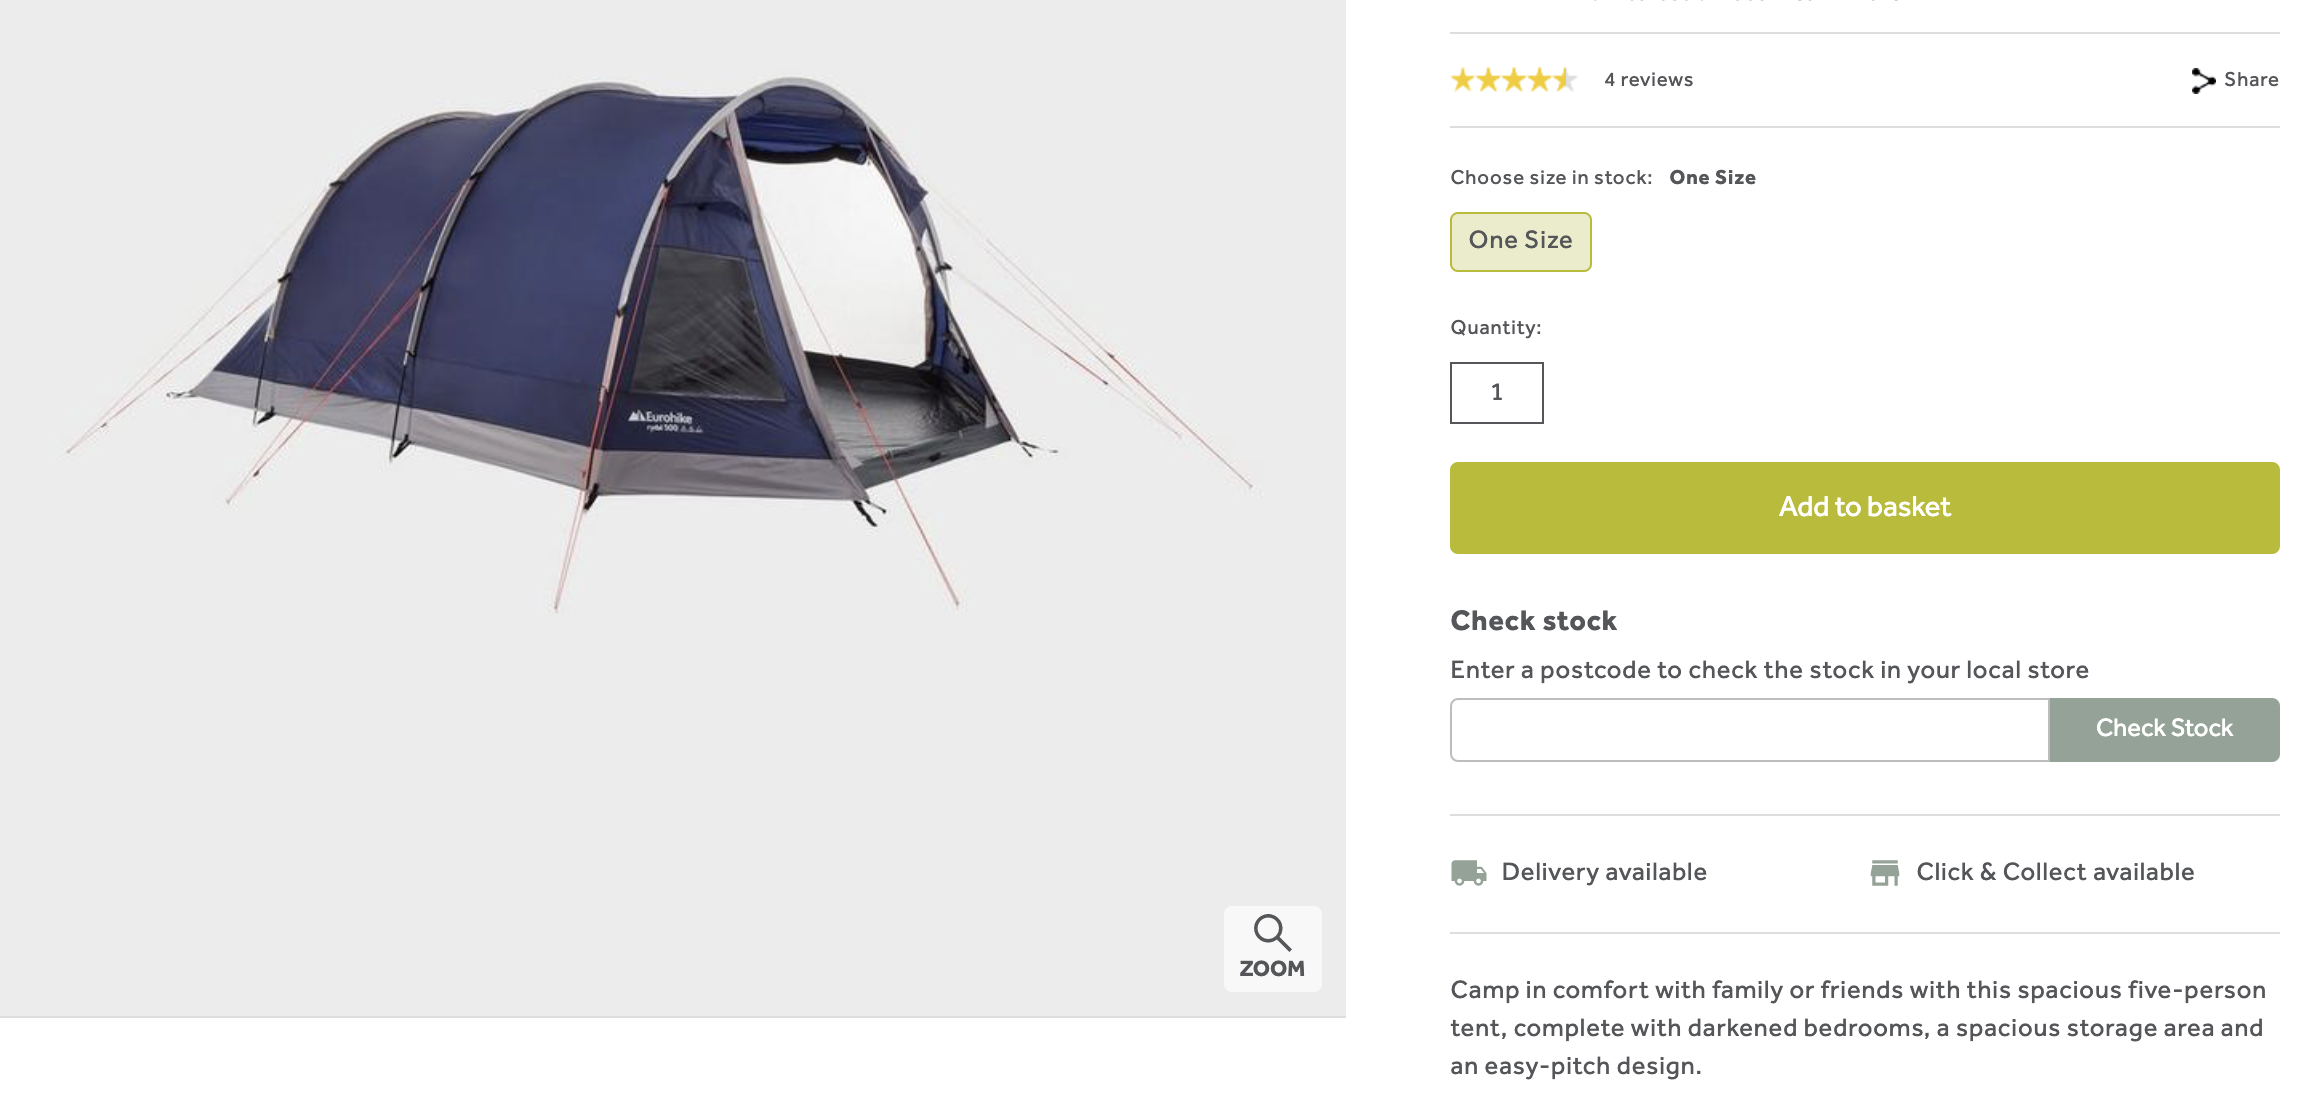 product description - tent